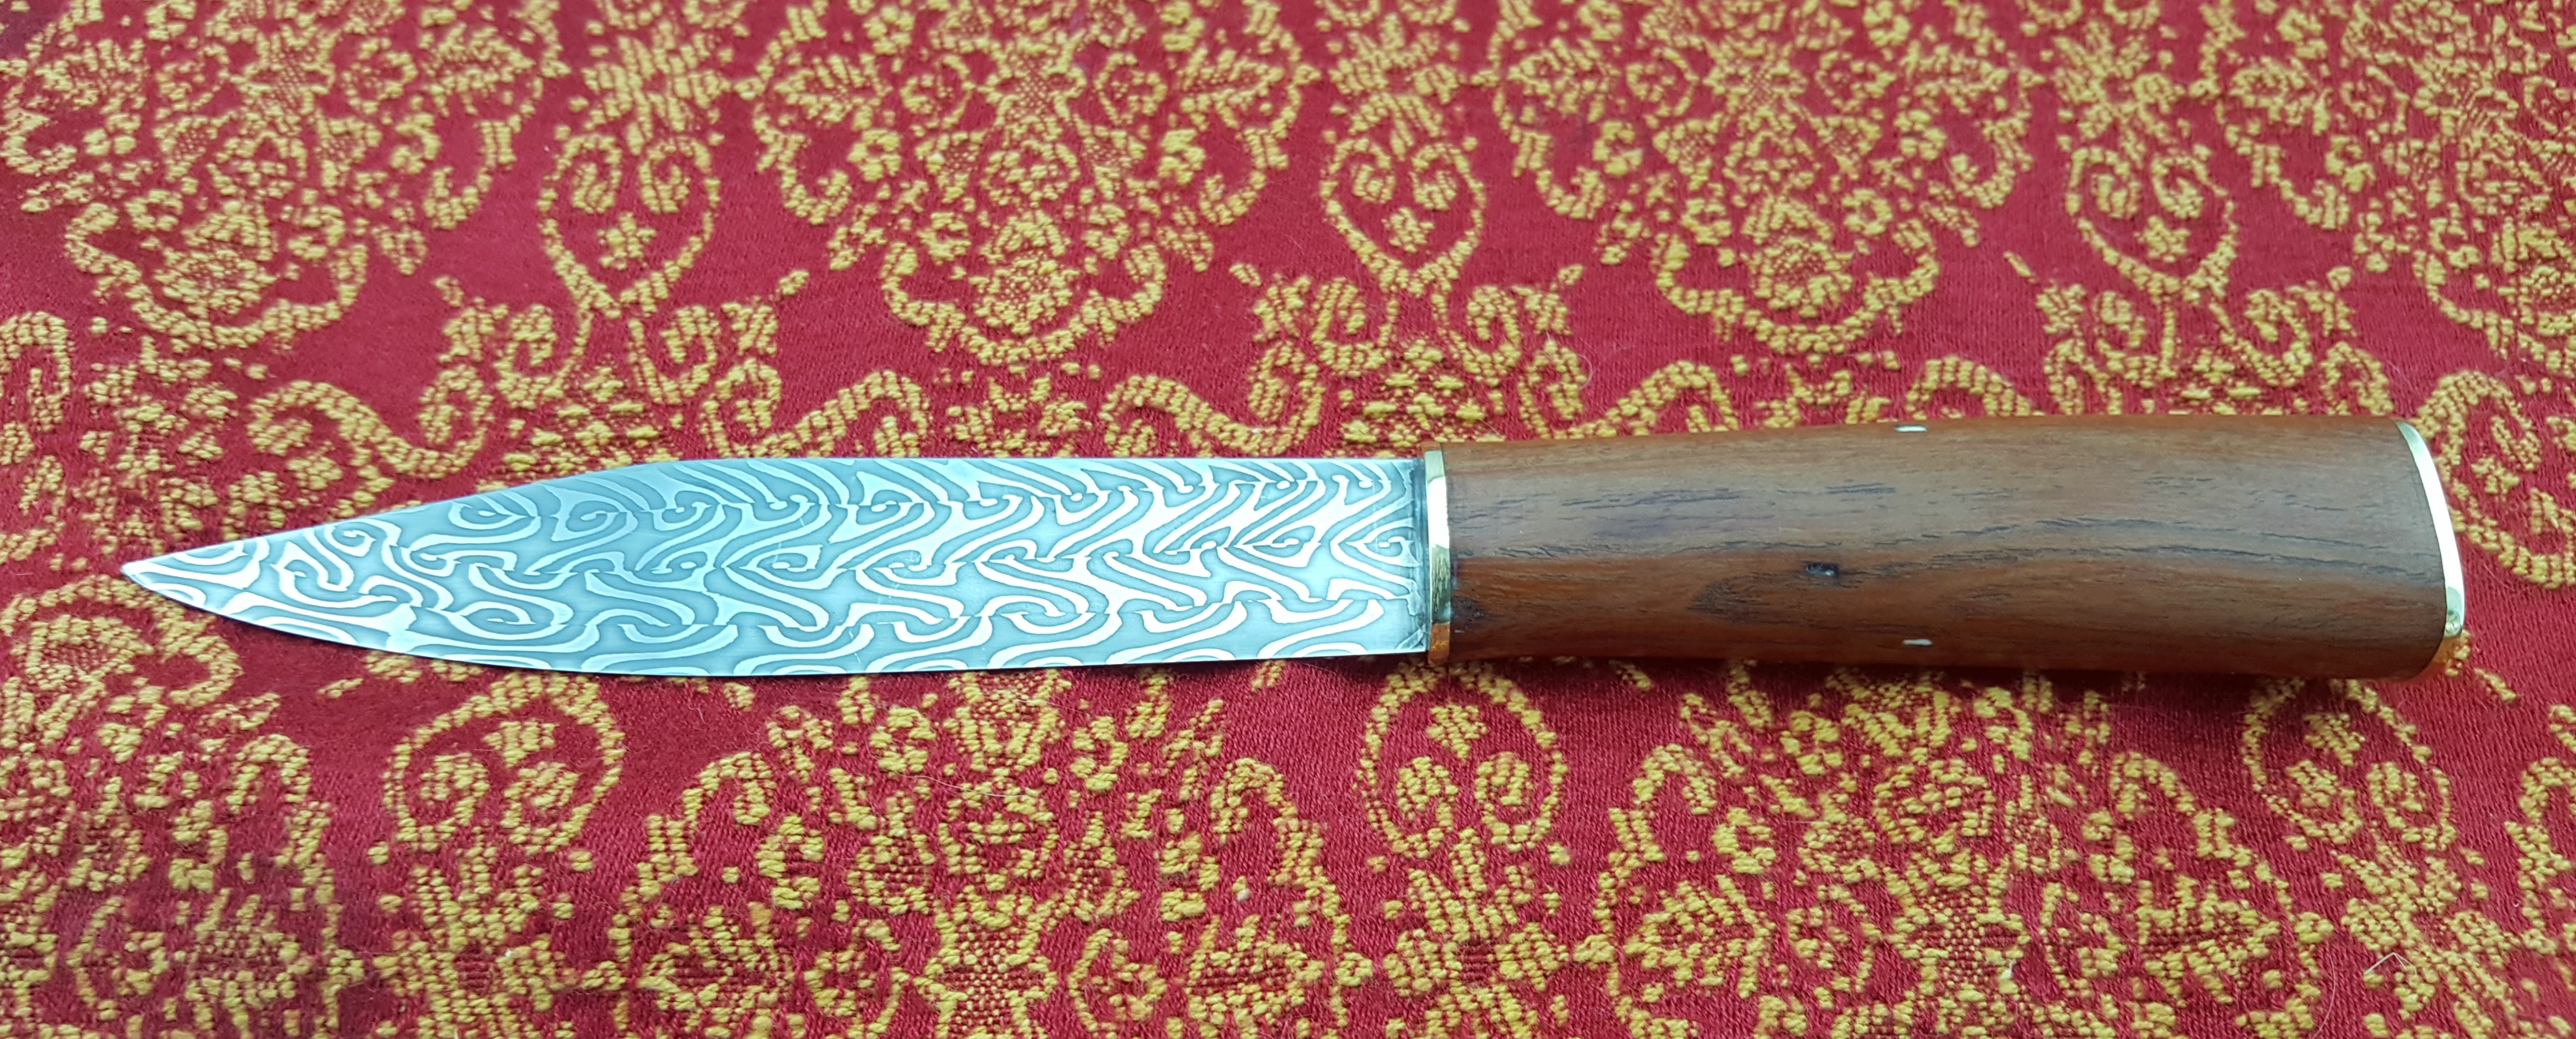 Wood handled seax.